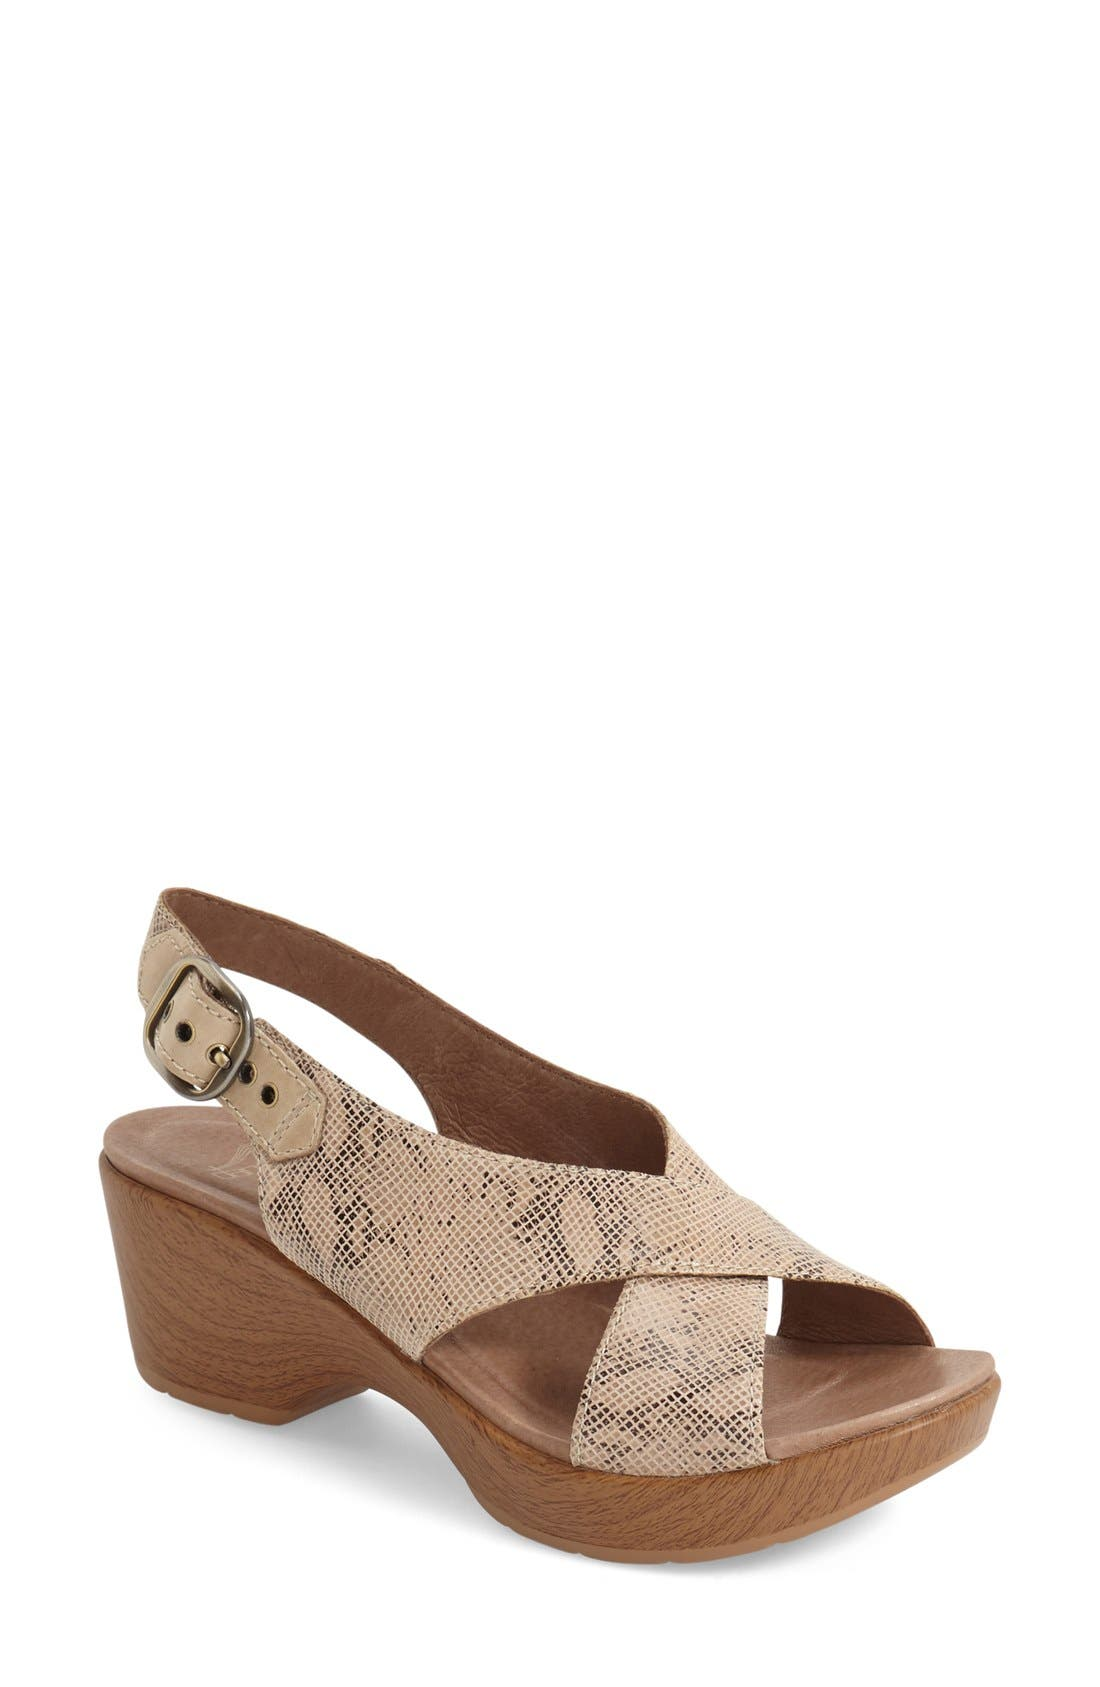 'Jacinda' Sandal,                             Main thumbnail 1, color,                             Taupe Snake Leather